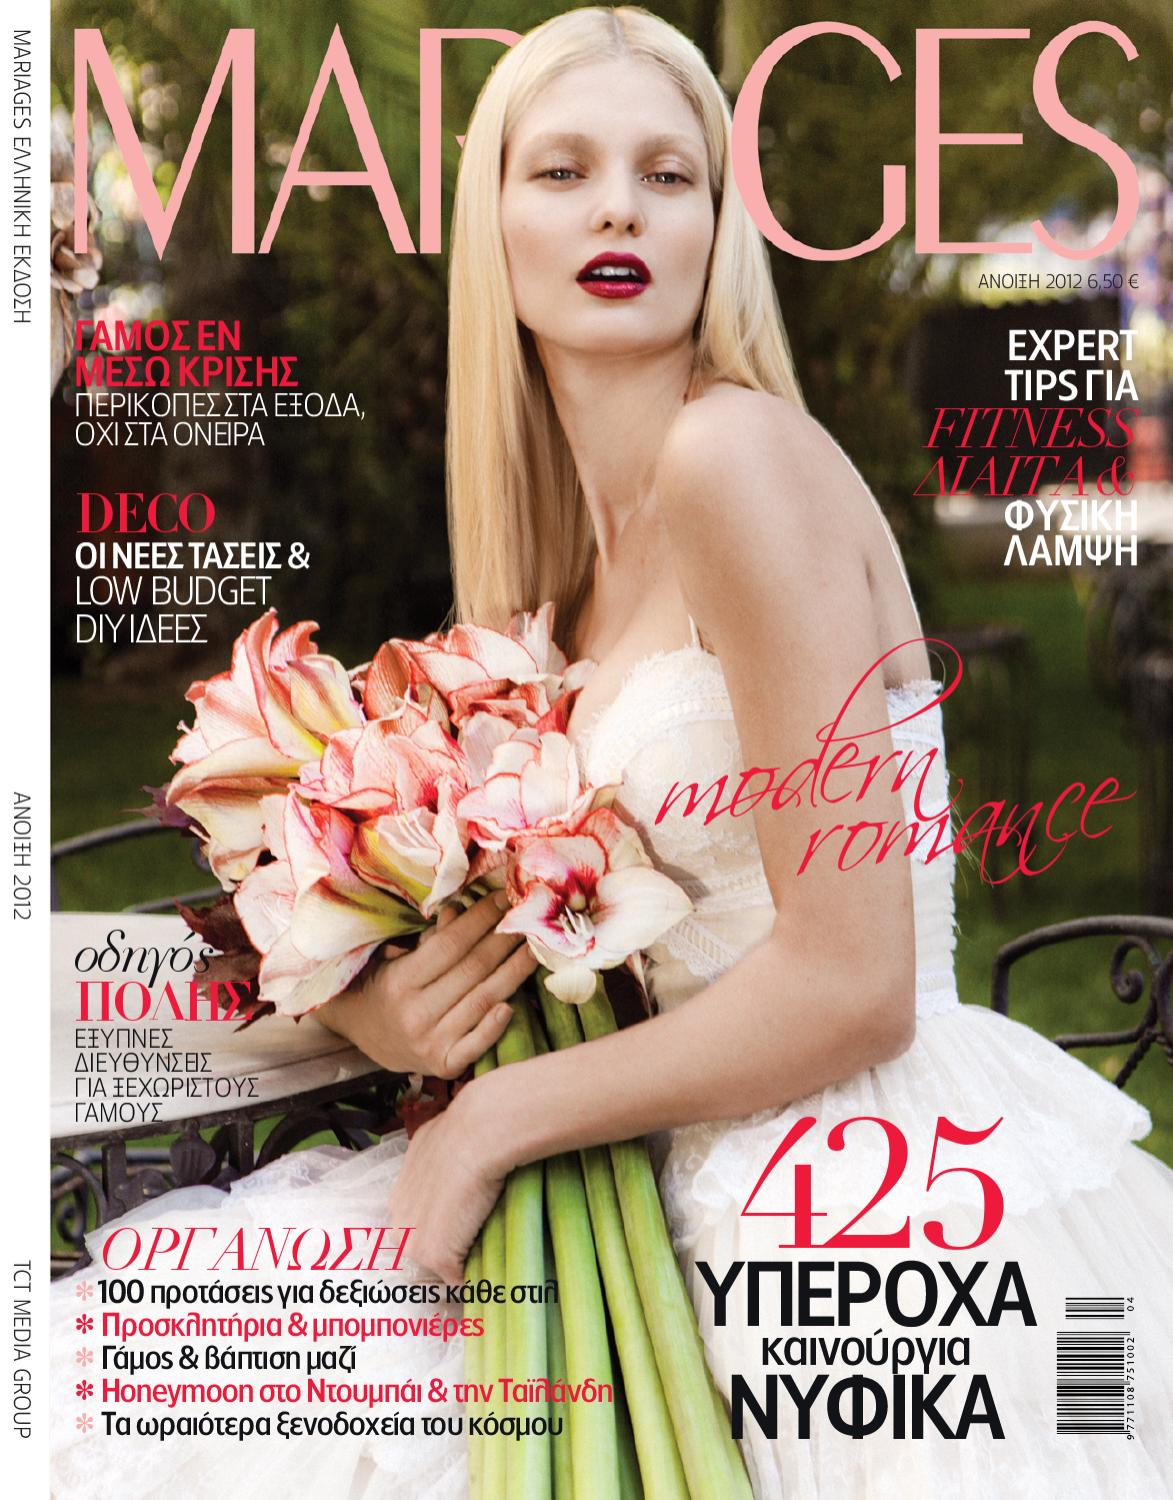 Mariages Άνοιξη 2012 by TCT MEDIA - issuu c75e145a059